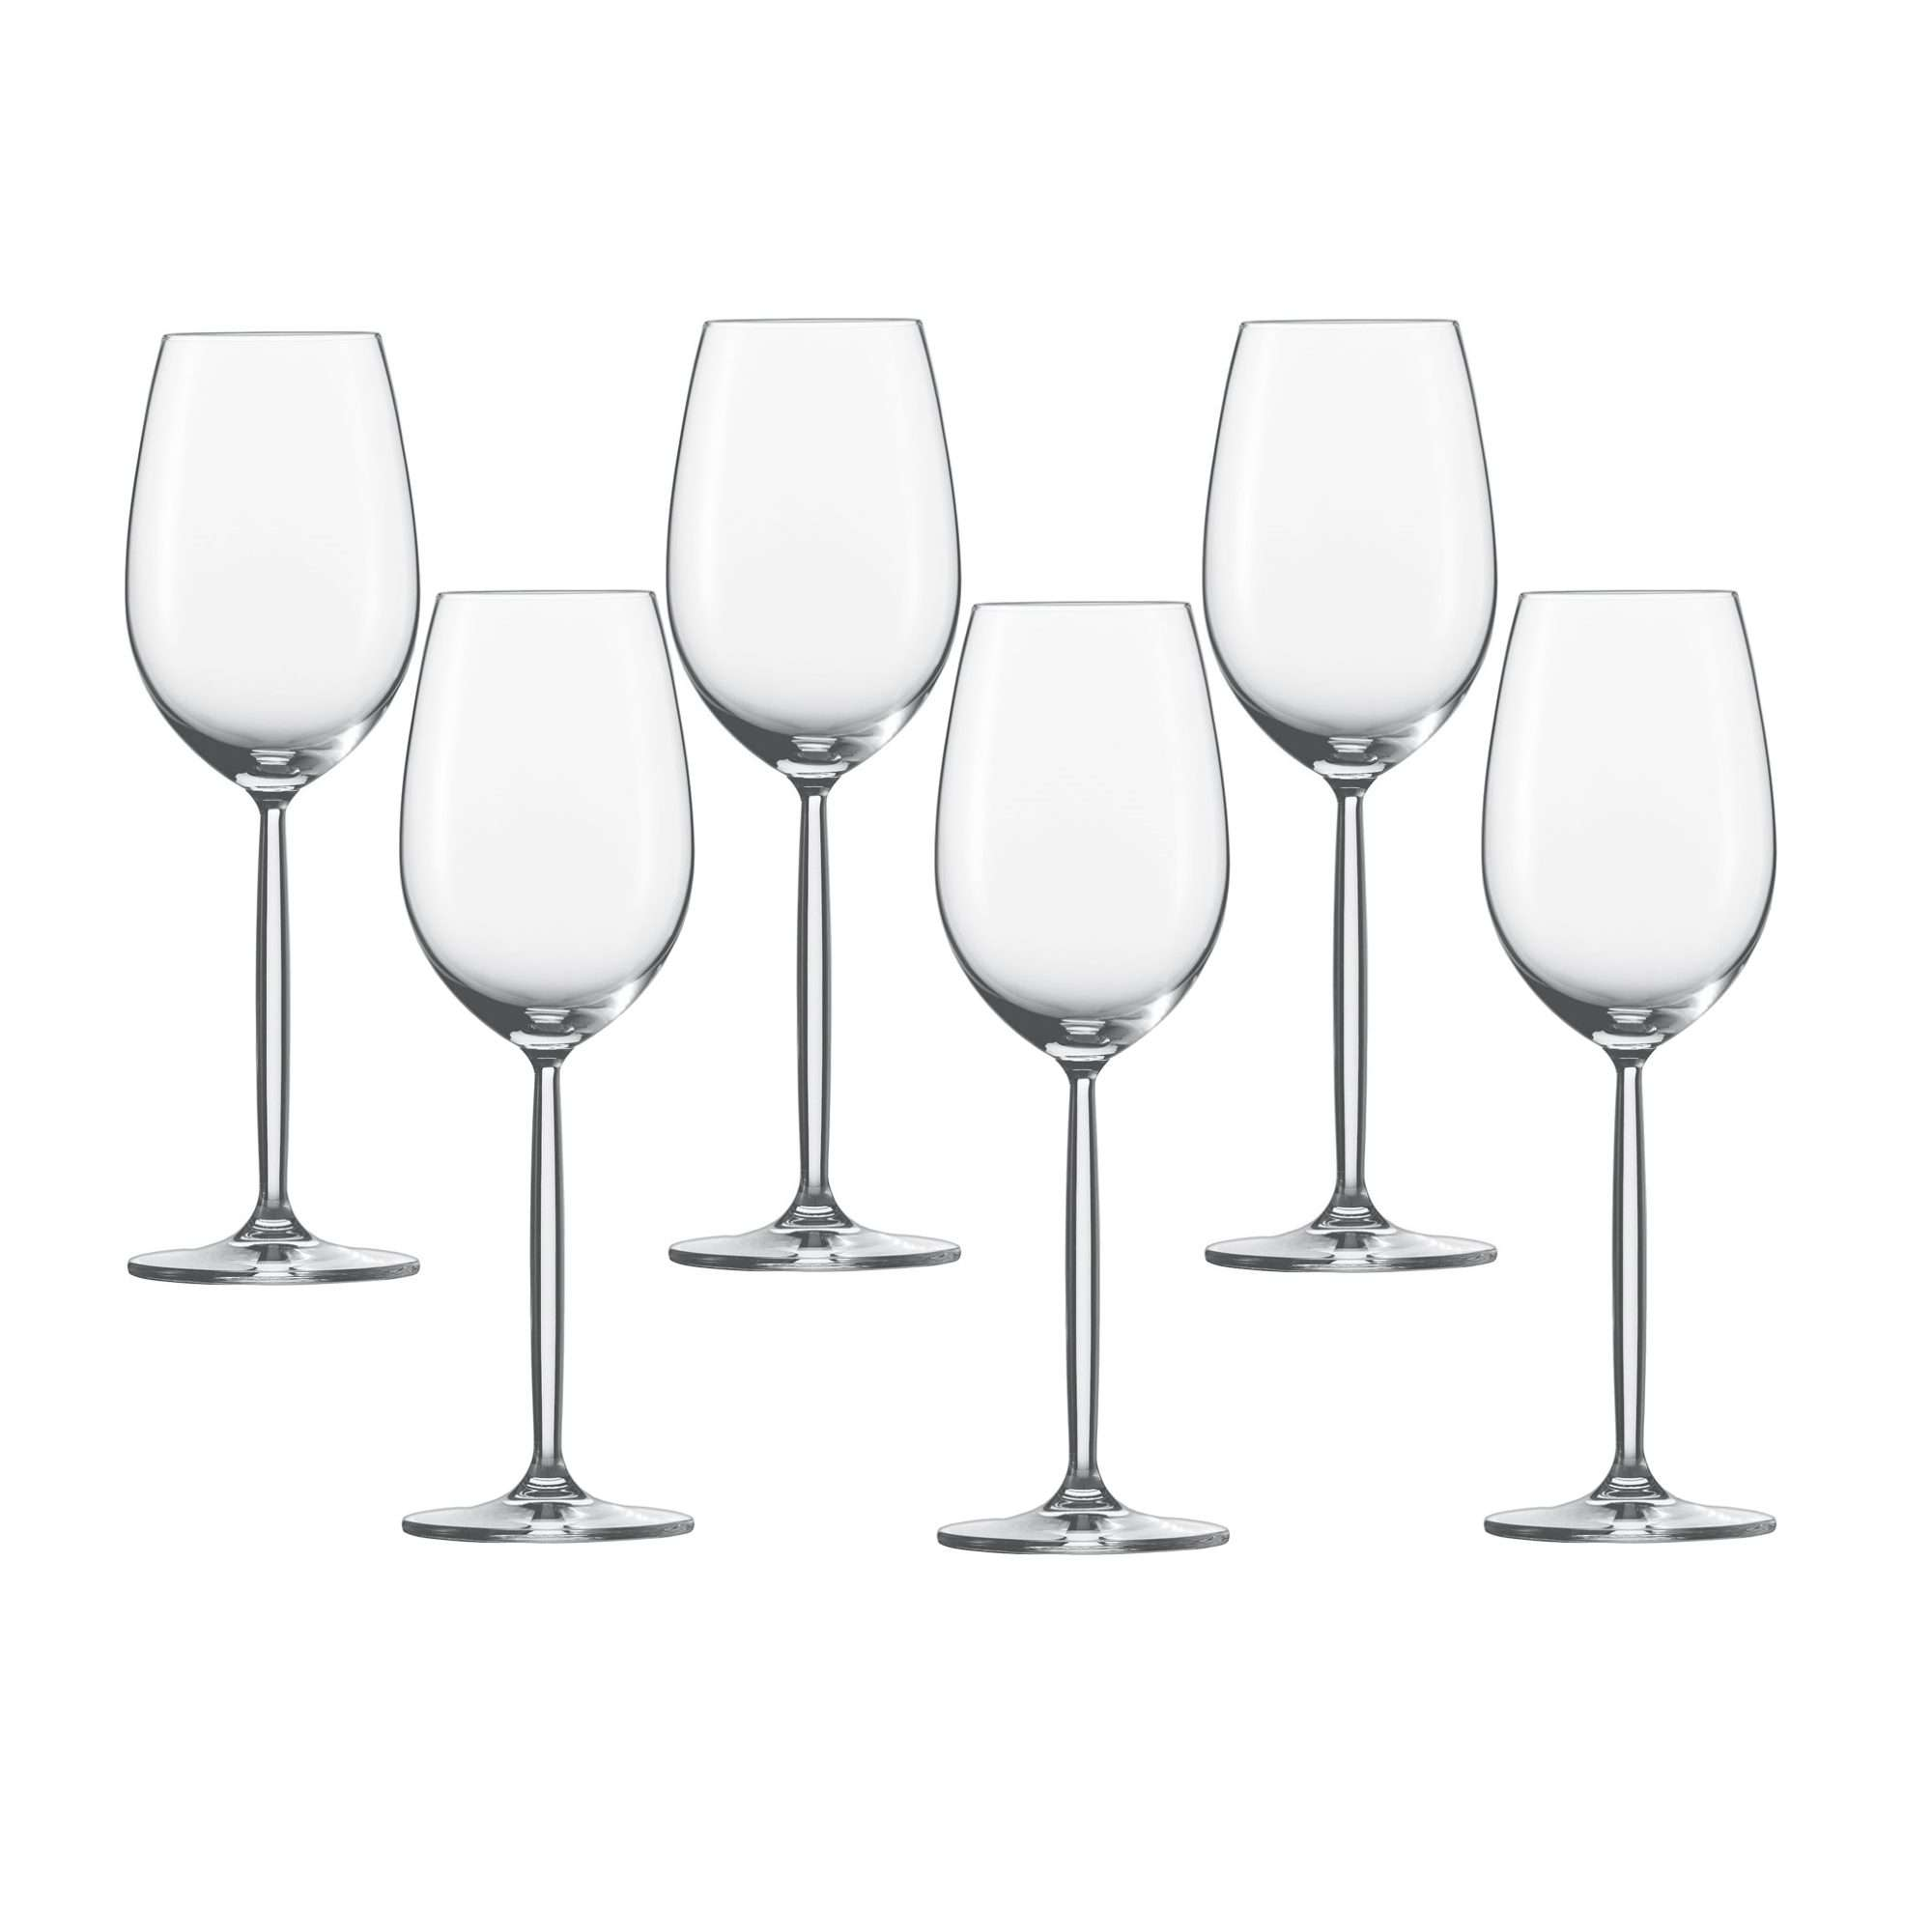 Weinkelch Glas Schott Zwiesel Diva Series White Wine Goblet 6 Pieces Capacity 302 Ml Glass